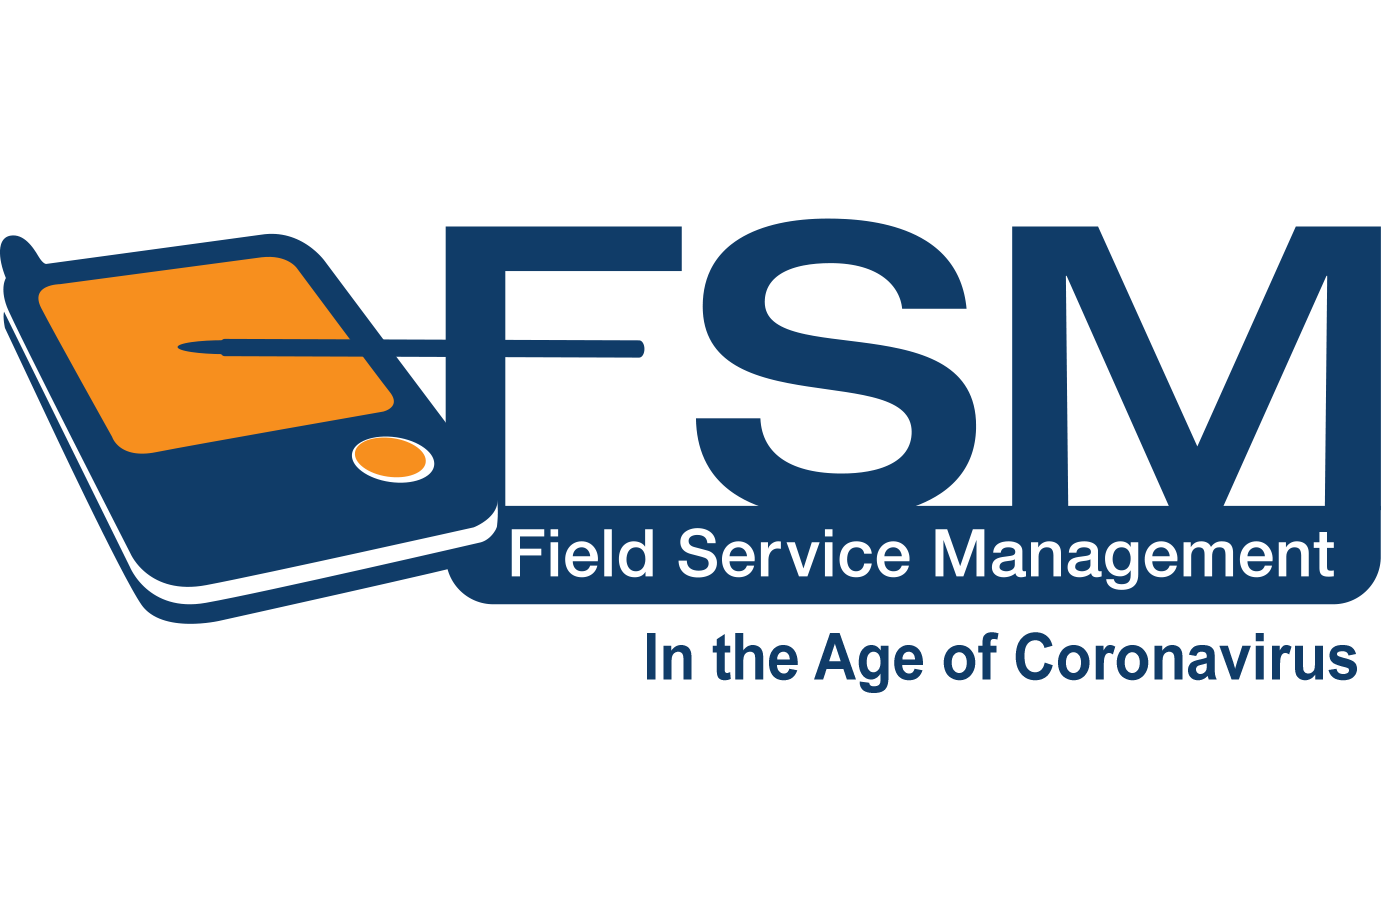 Field Service Management 2020